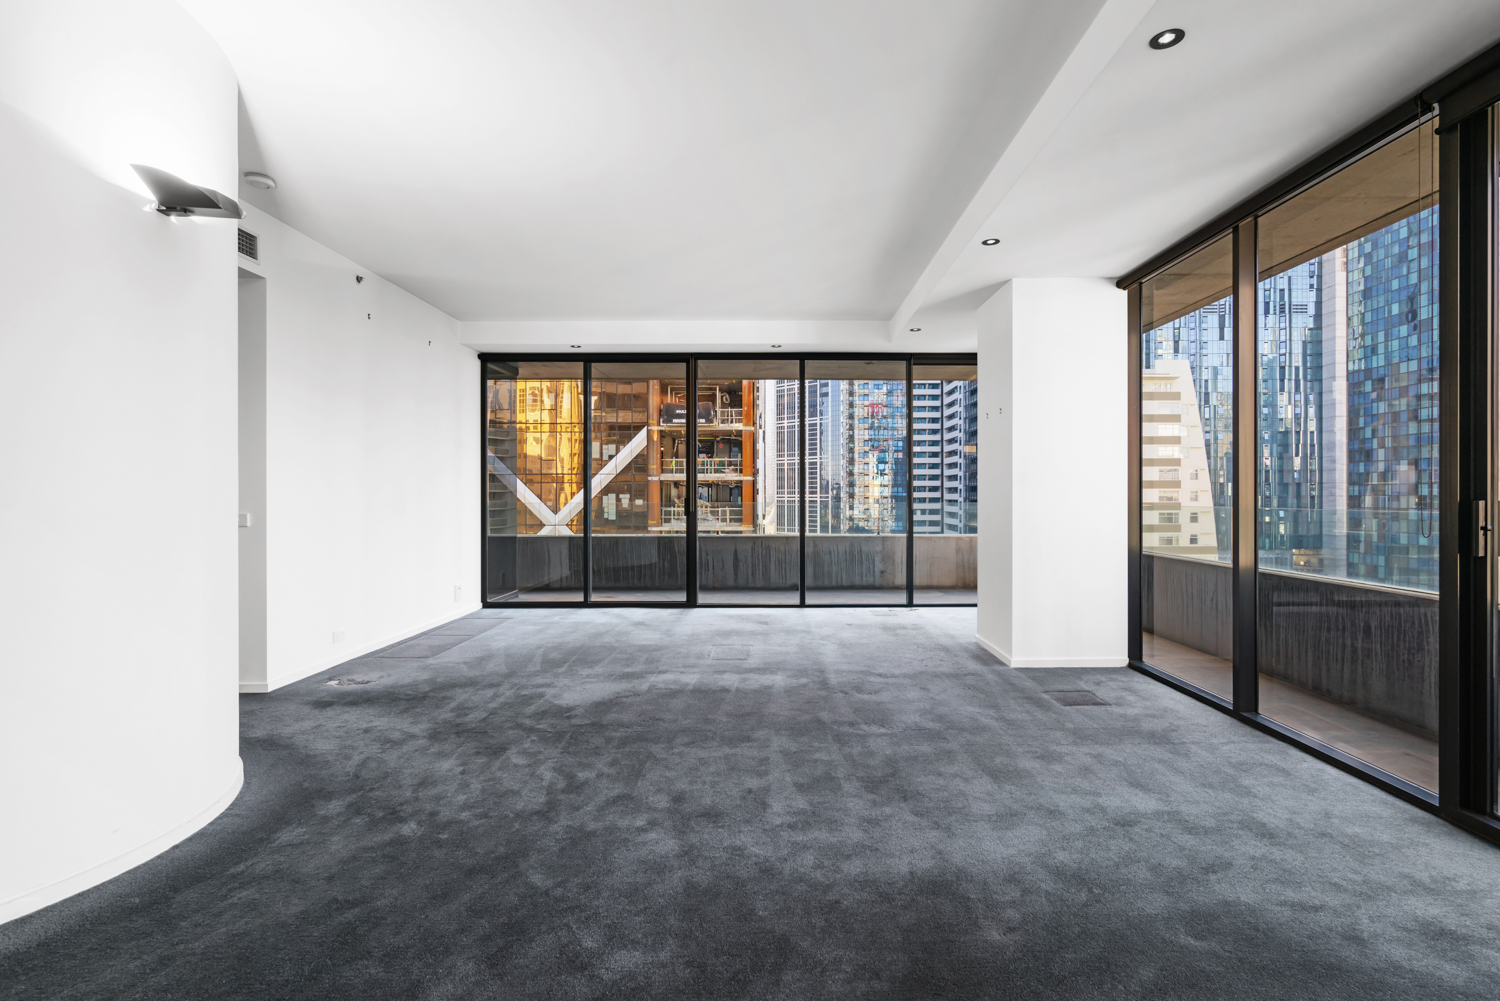 152-299-queen-street-melbourne-student-accommodation-Melbourne-Unilodgers